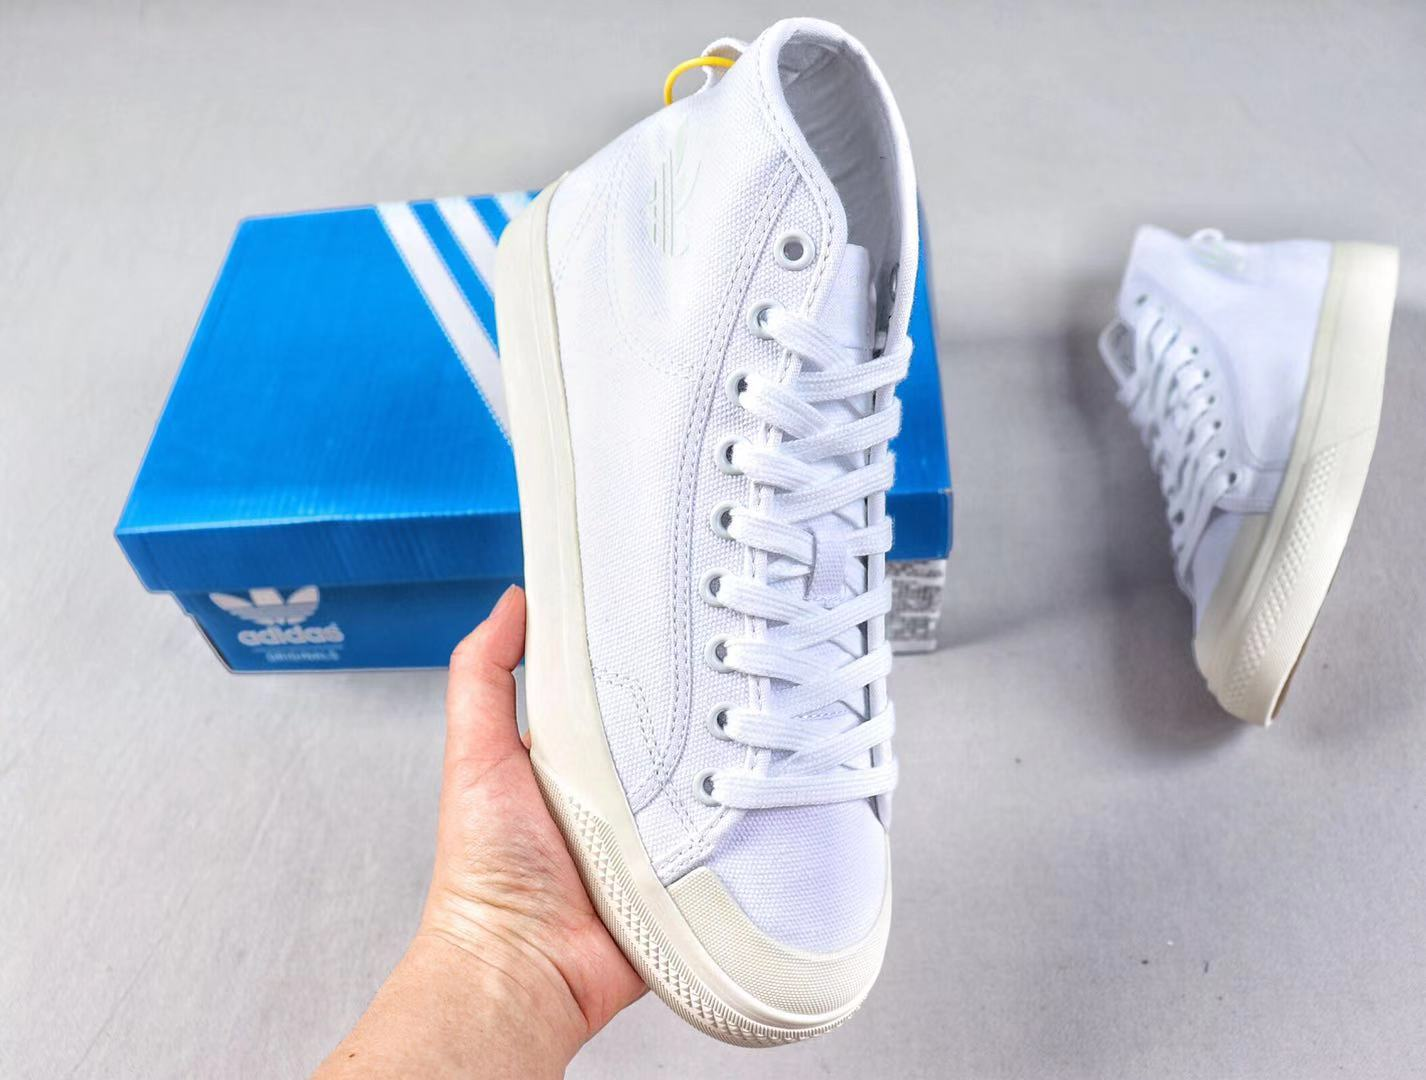 Adidas Nizza High B41643 Cloud White/Off White Top Shoes For Sale